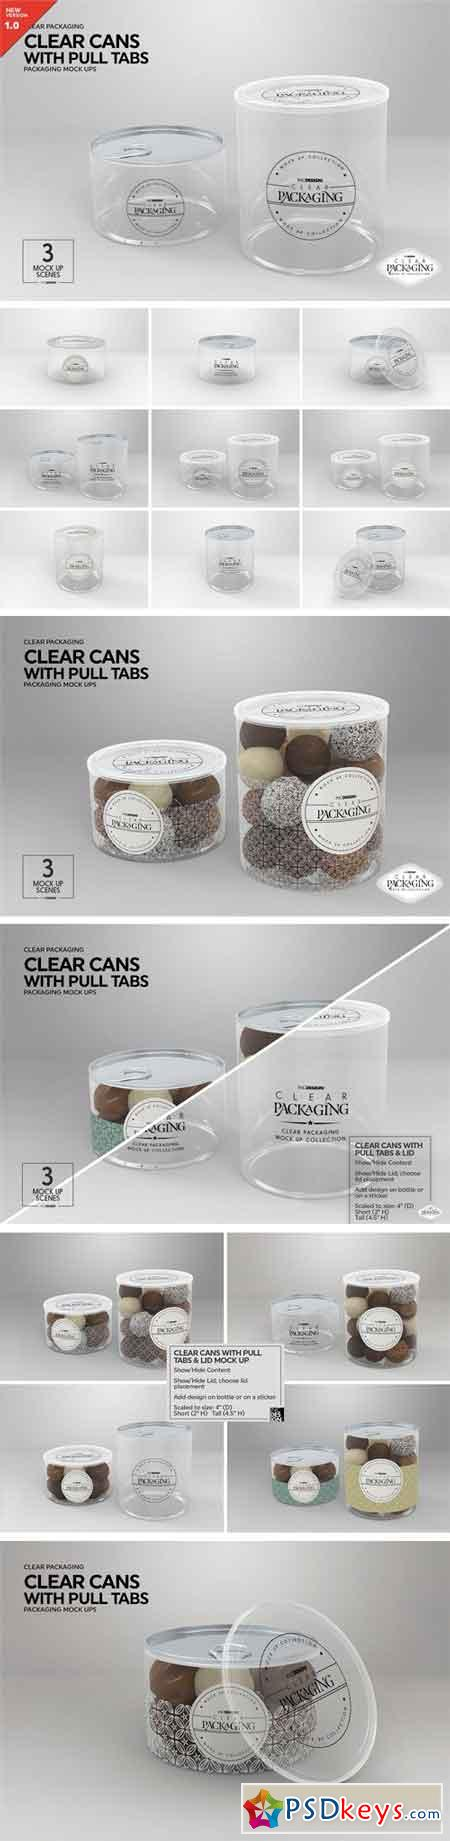 Clear Cans with Pull Tabs Mock Up 2218686